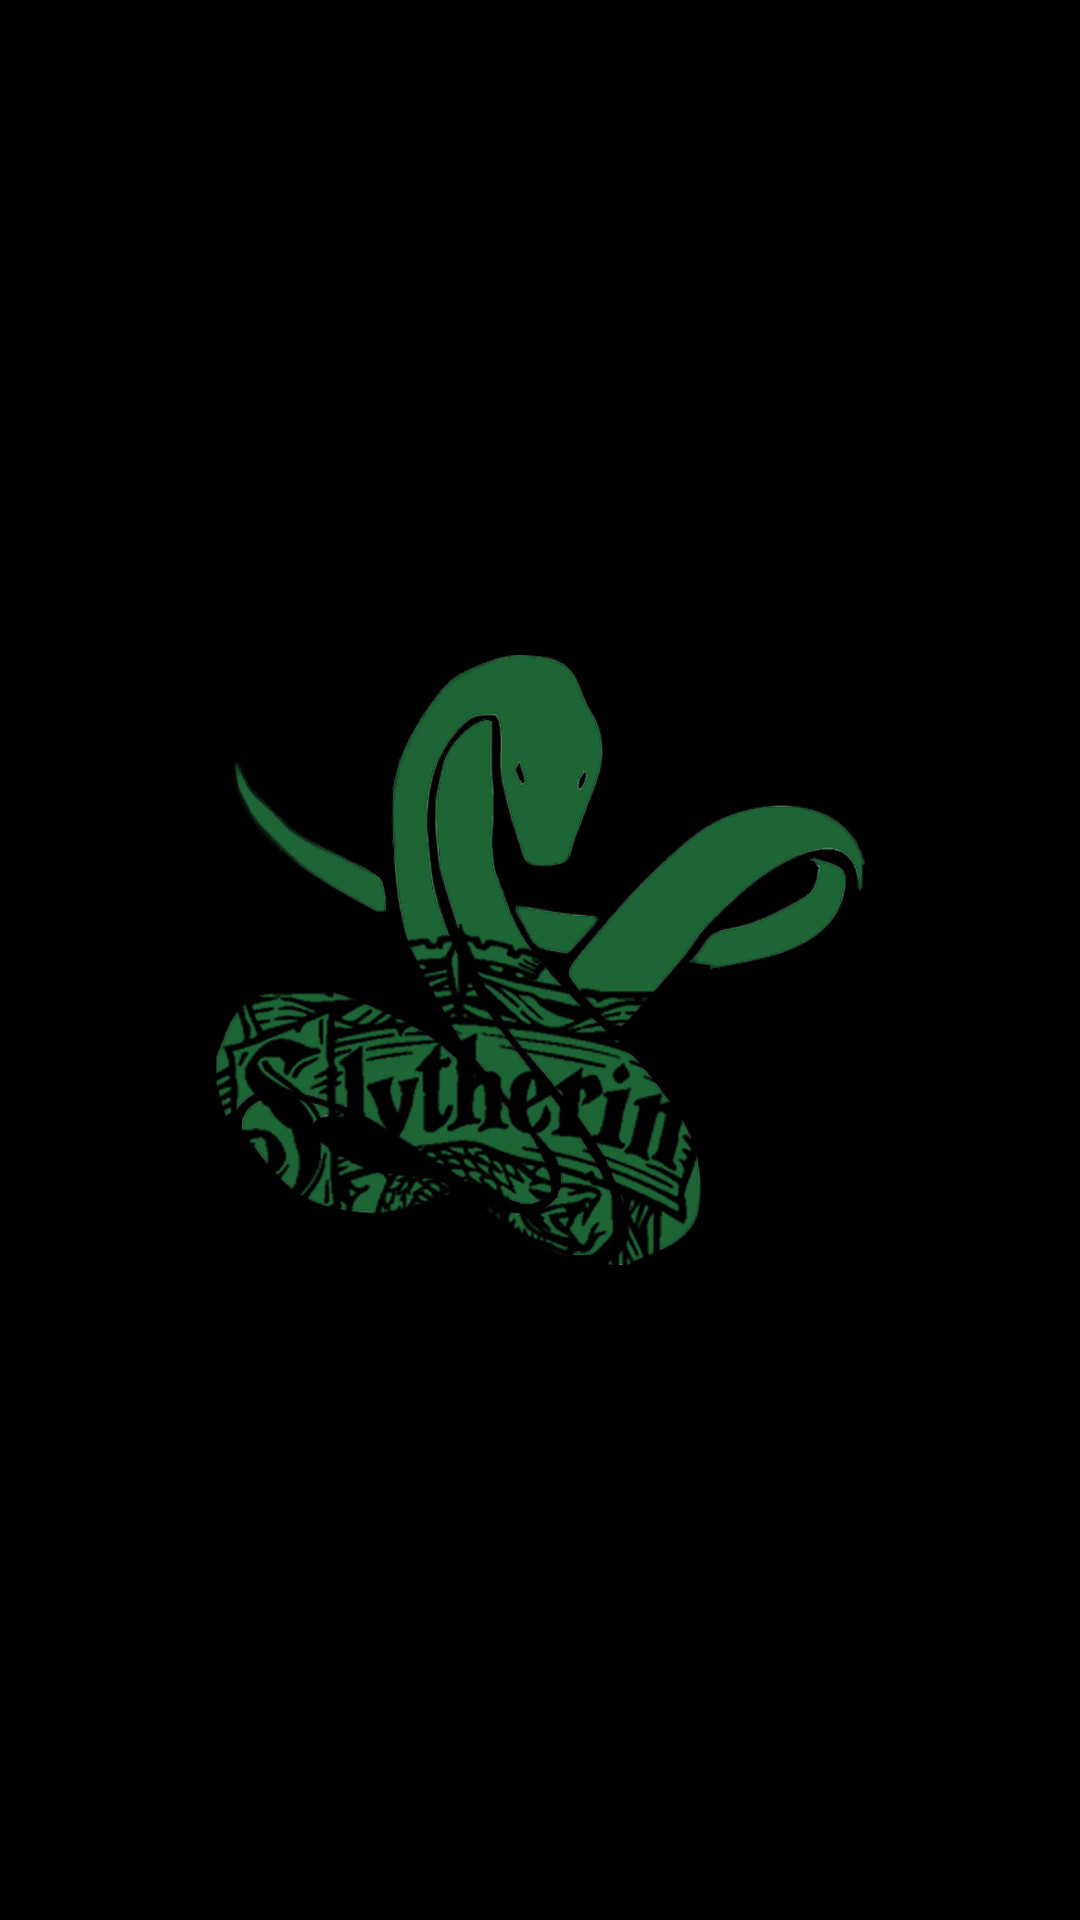 Slytherin Iphone 7 Wallpaper